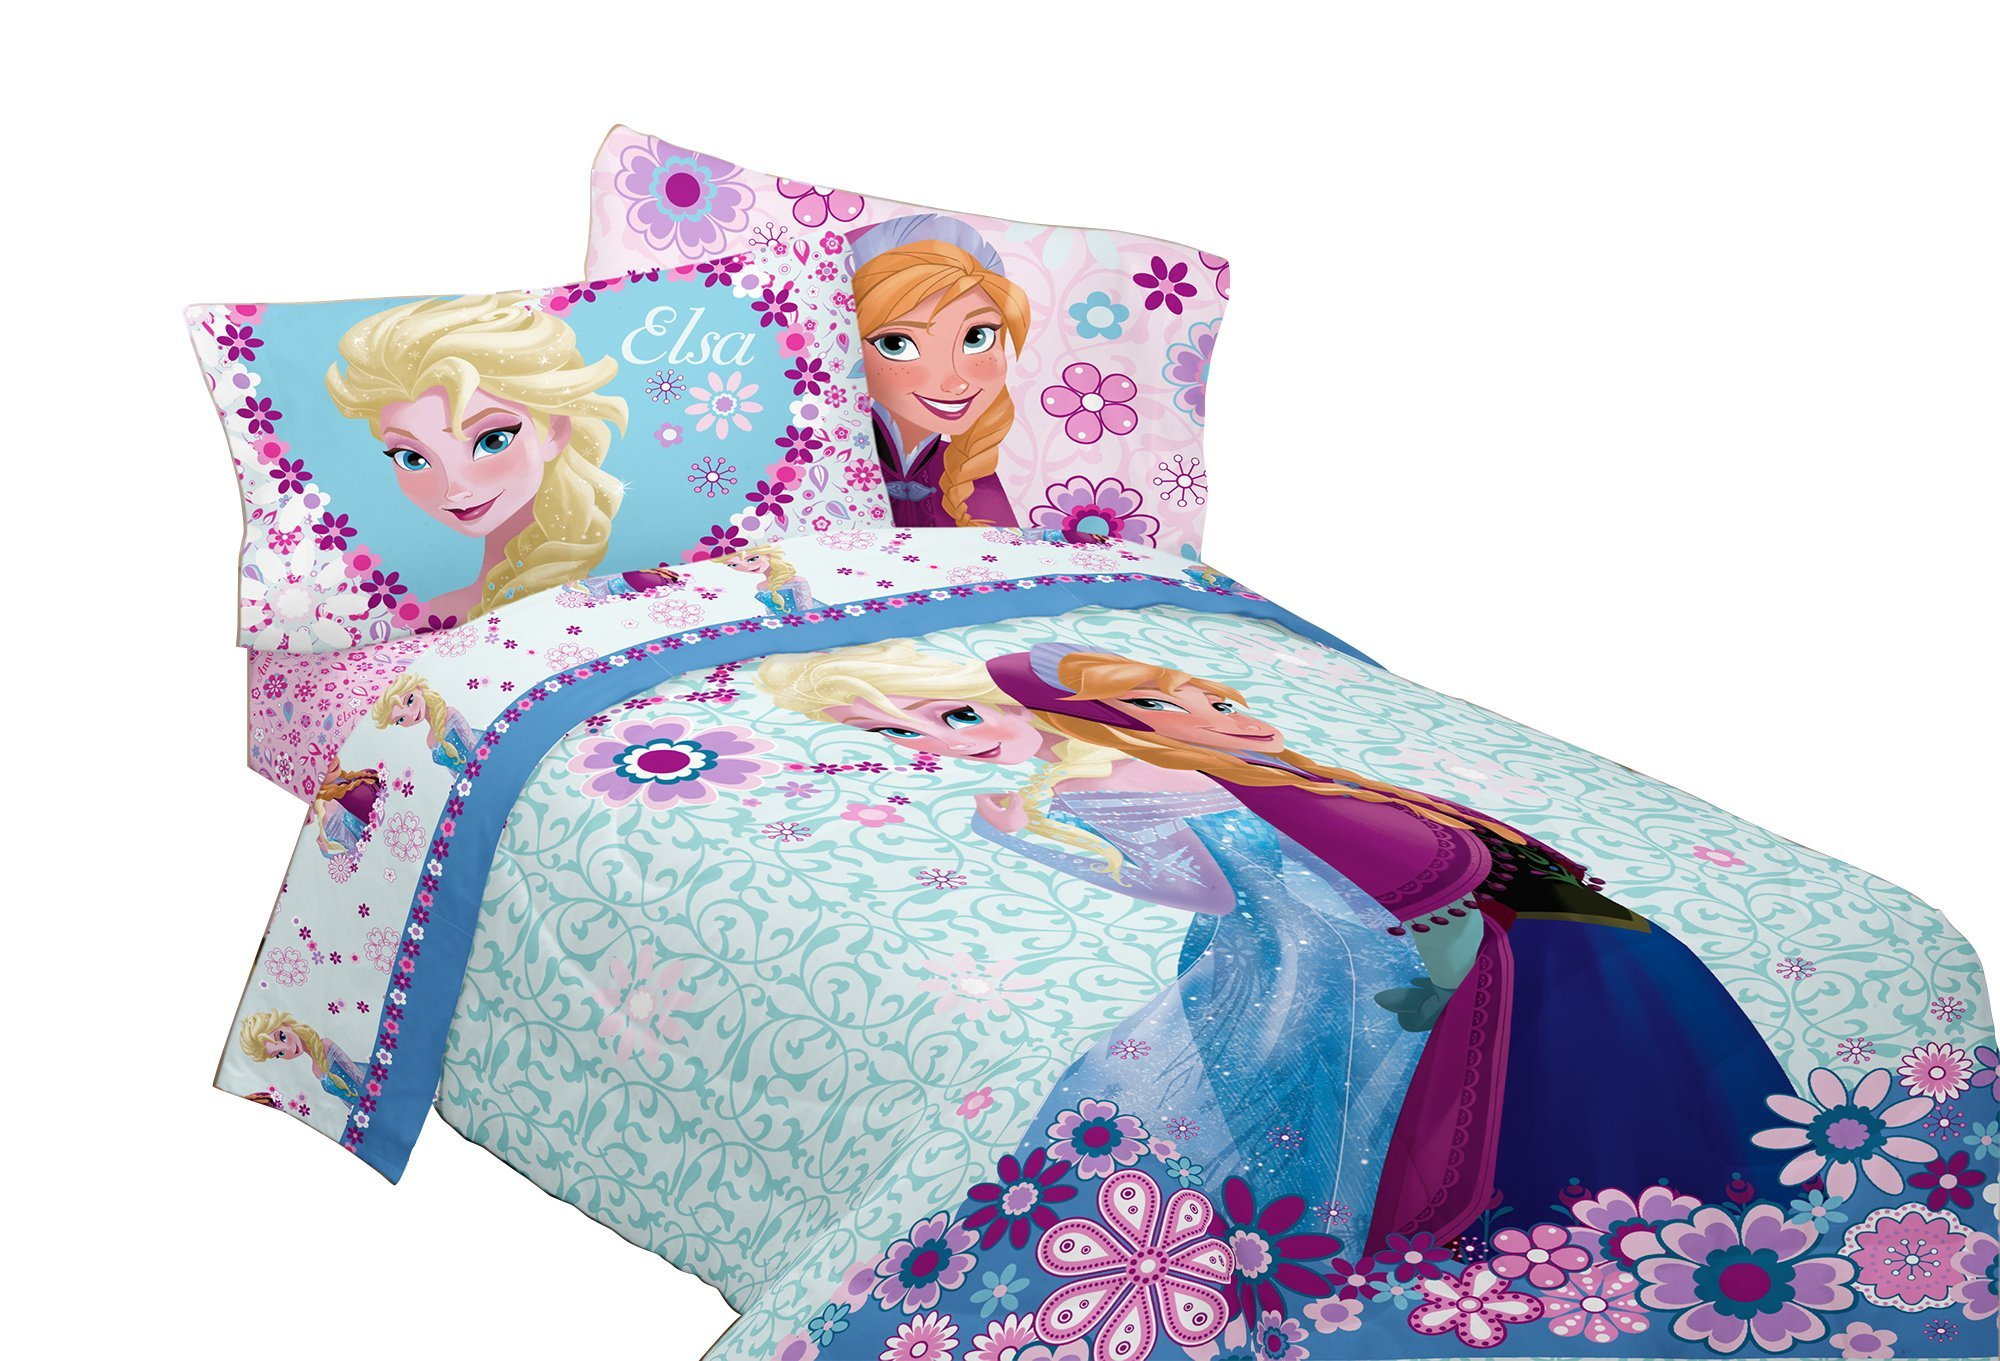 Disney Frozen Warm Heart Microfiber Comforter, 72'' x 86''/Twin/Full